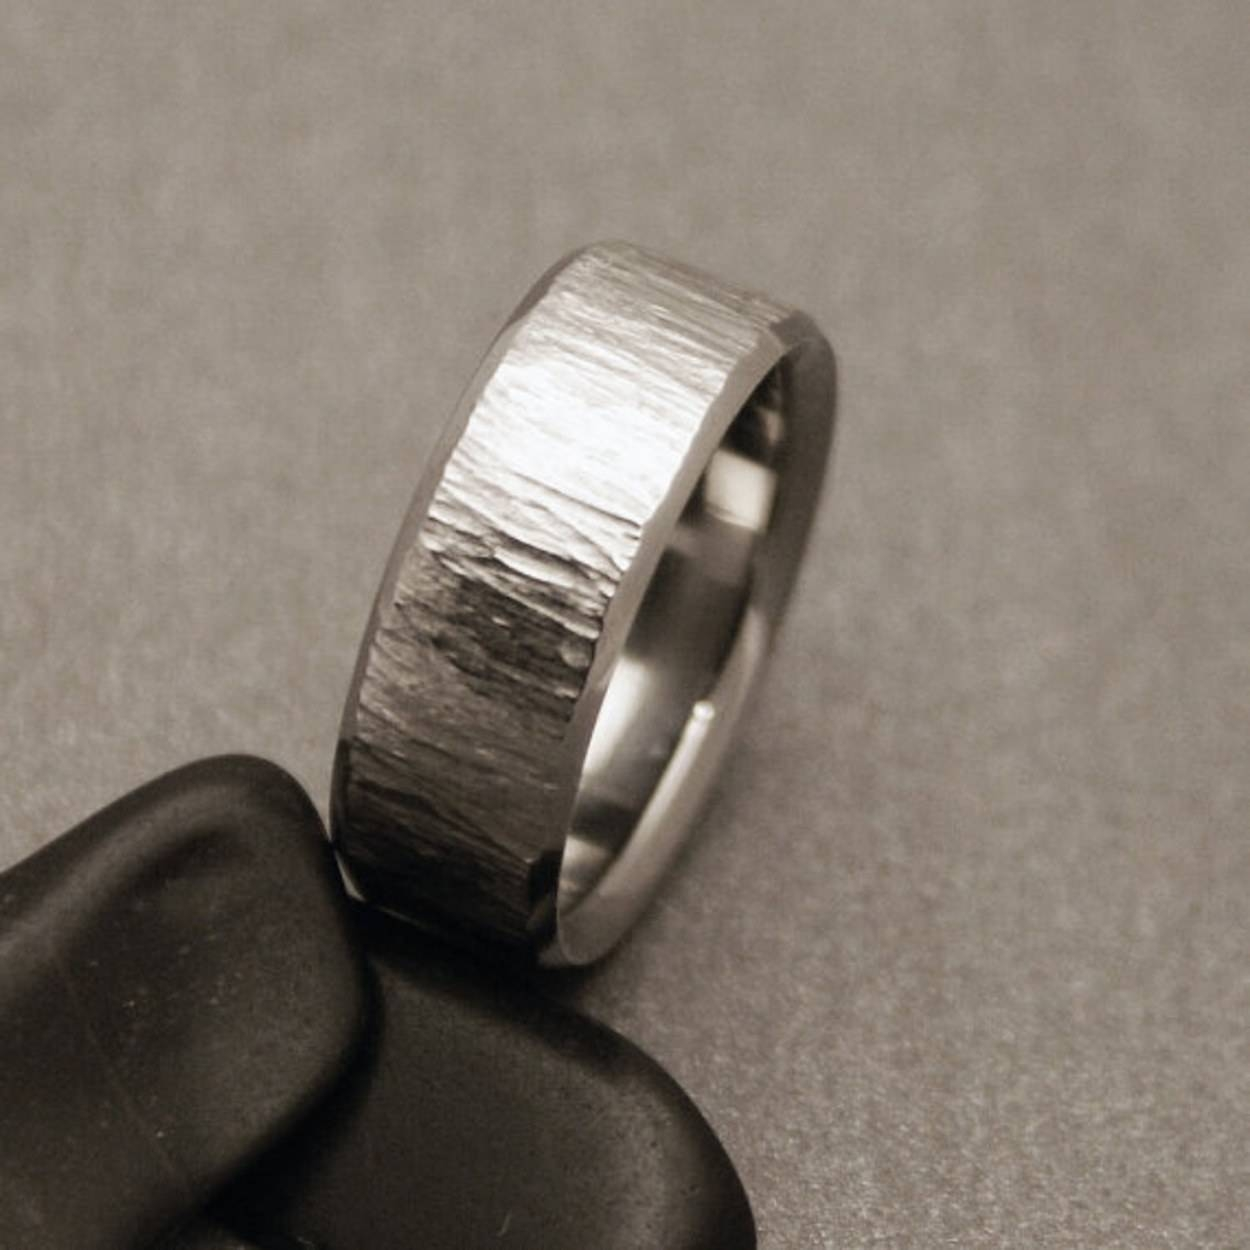 15 Men's Wedding Bands Your Groom Won't Want To Take Off | Glamour Pertaining To Masculine Wedding Rings (View 2 of 15)